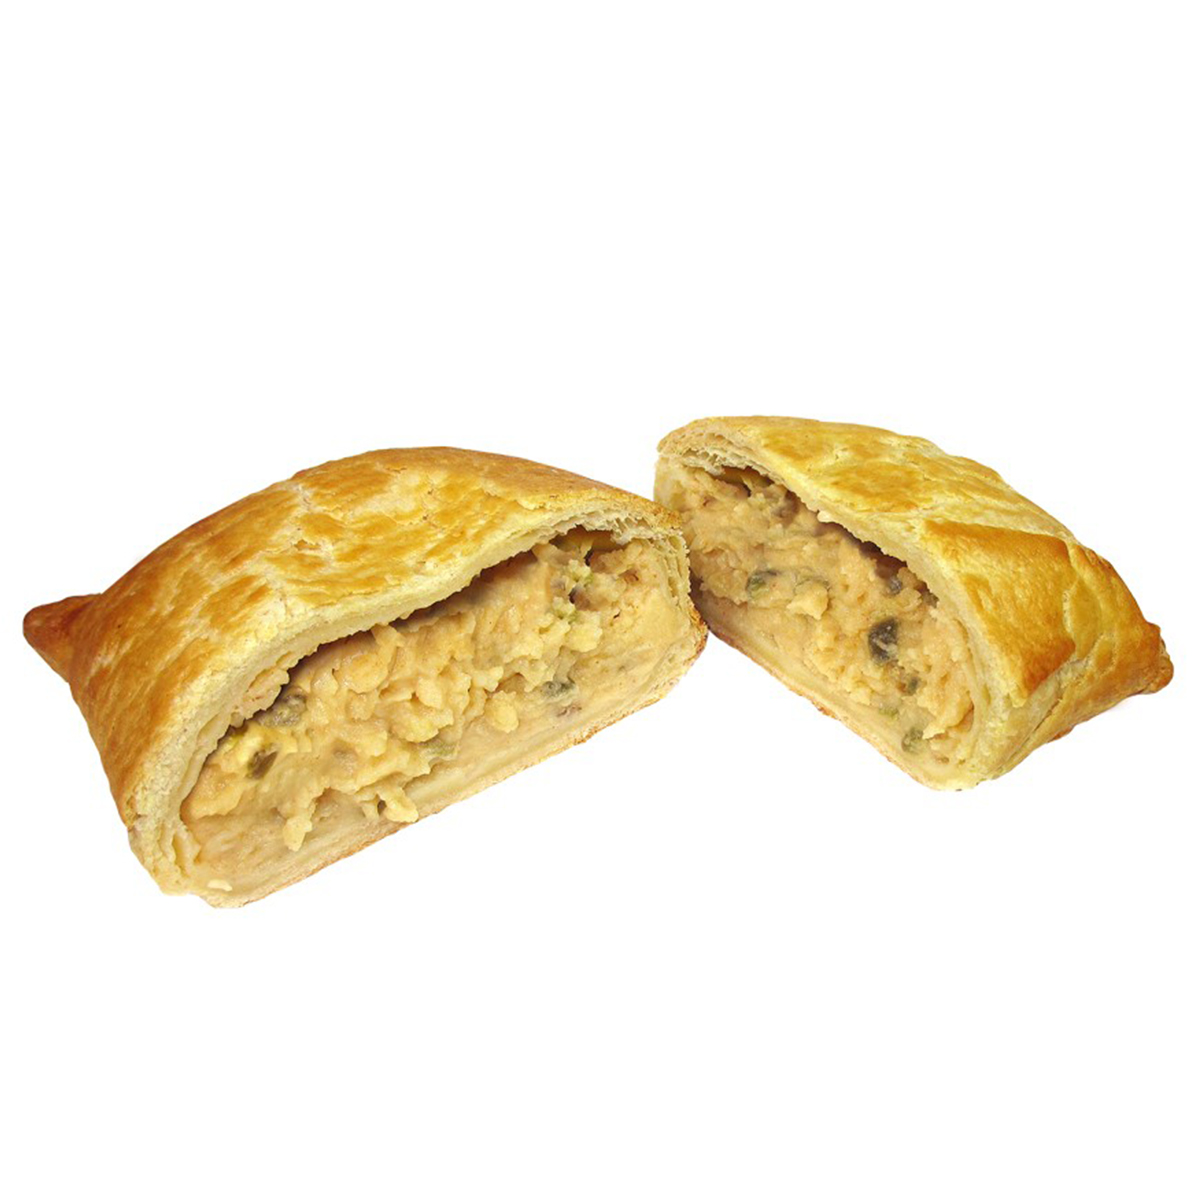 11530 Cheese and Jalapeno Pasty